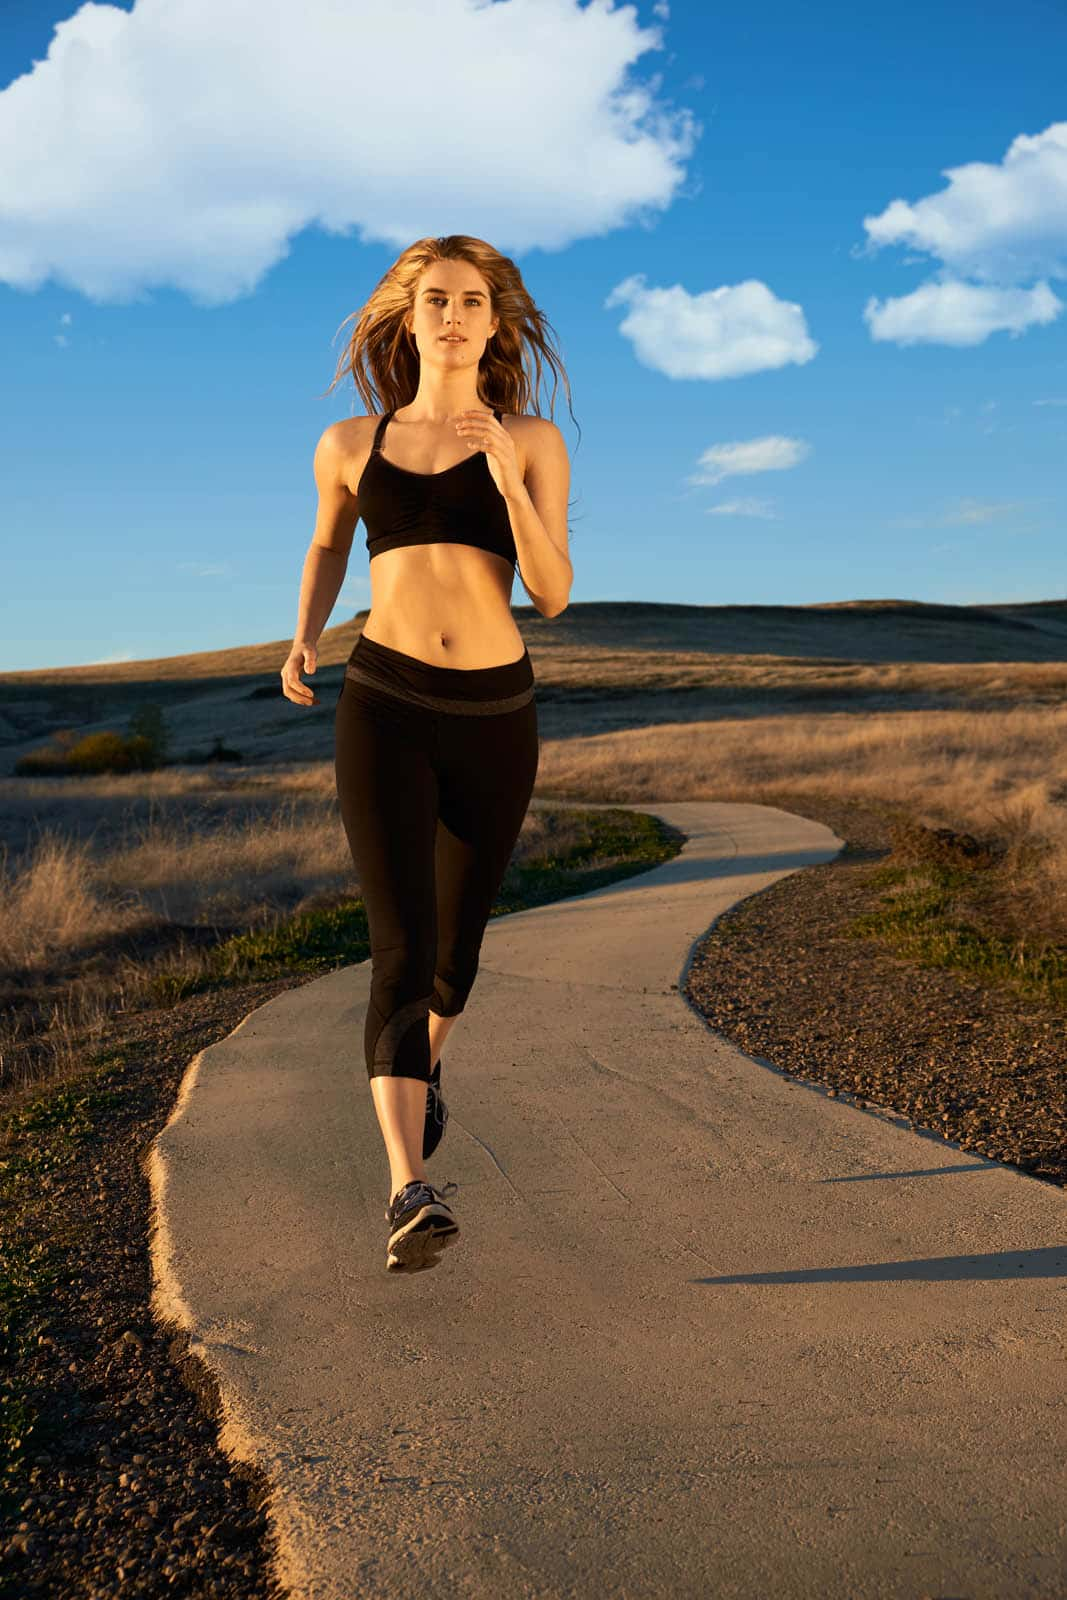 Young Woman Running on an Outdoor Jogging Path.